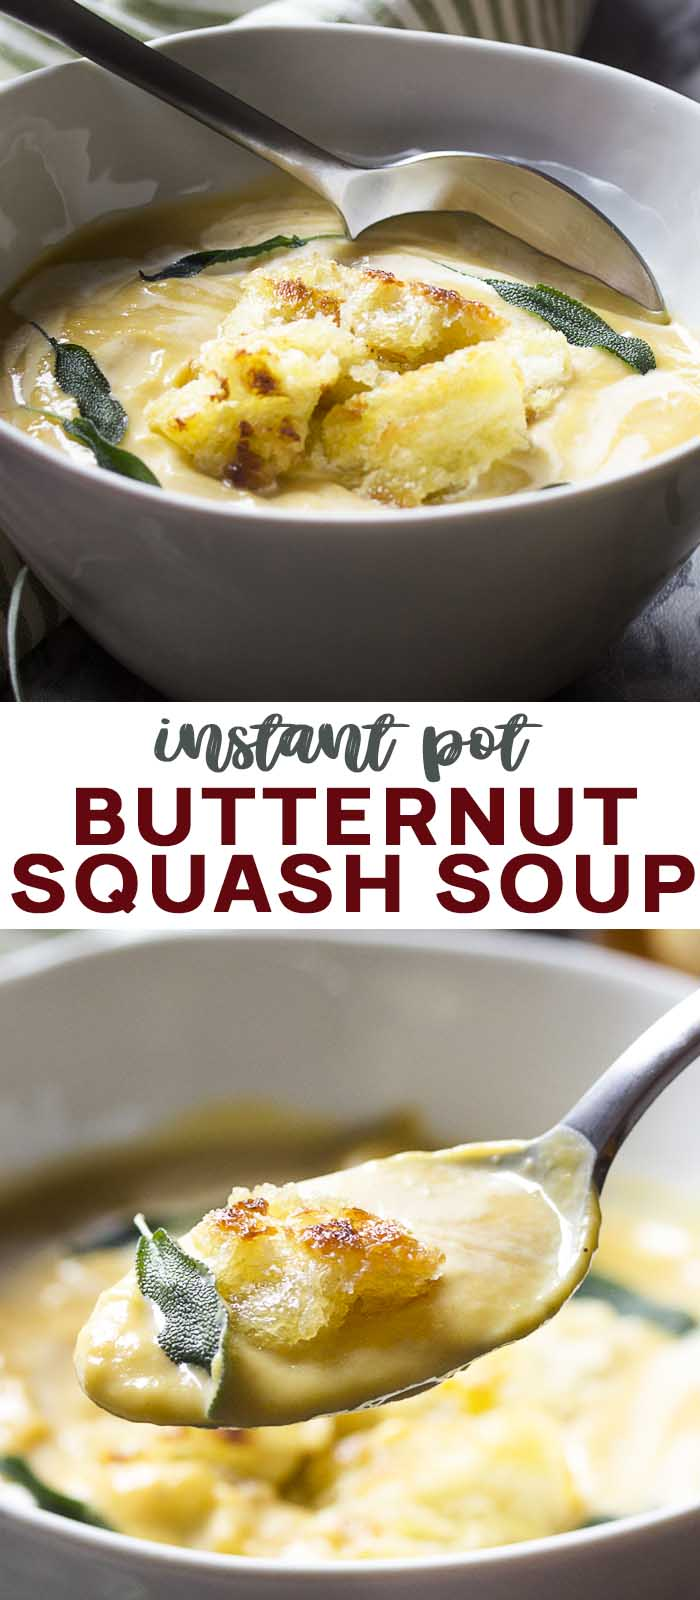 Views of soup, crouton, and sage in a bowl with text overlay - Butternut Squash Soup.